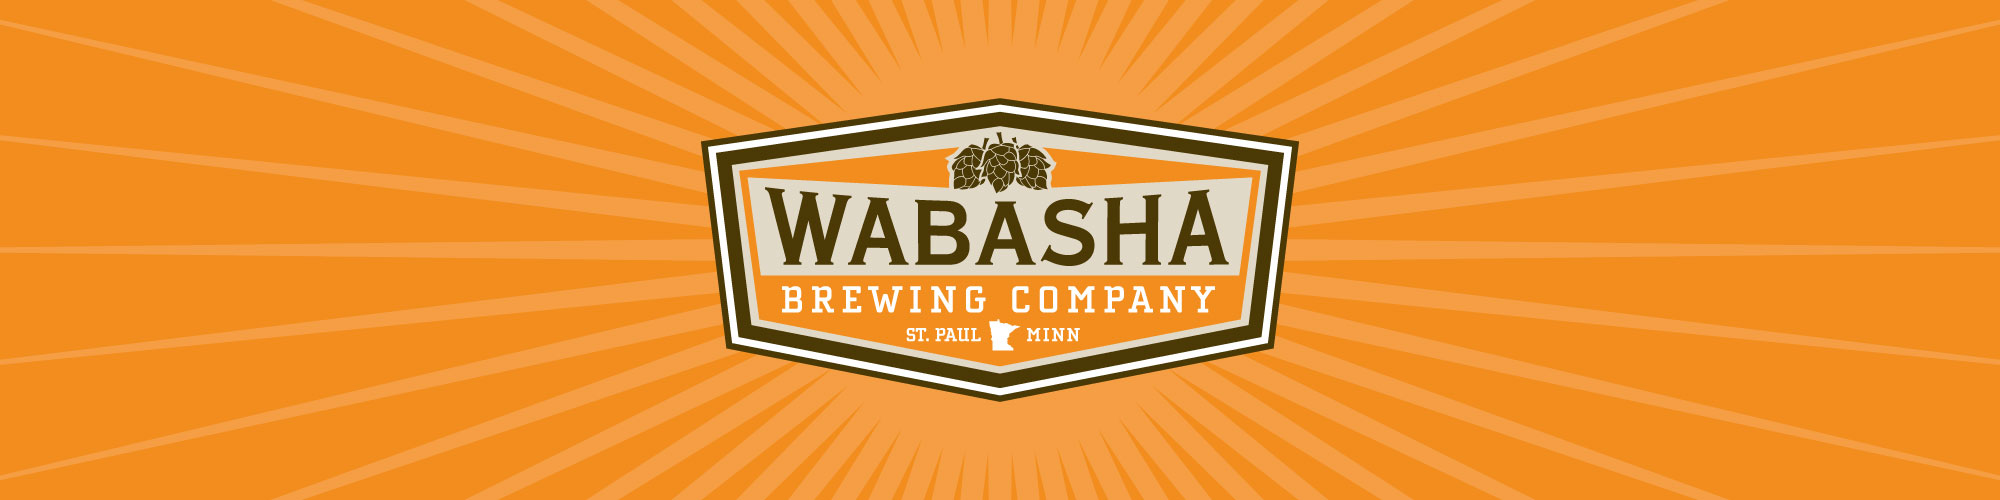 wabasha-brewing